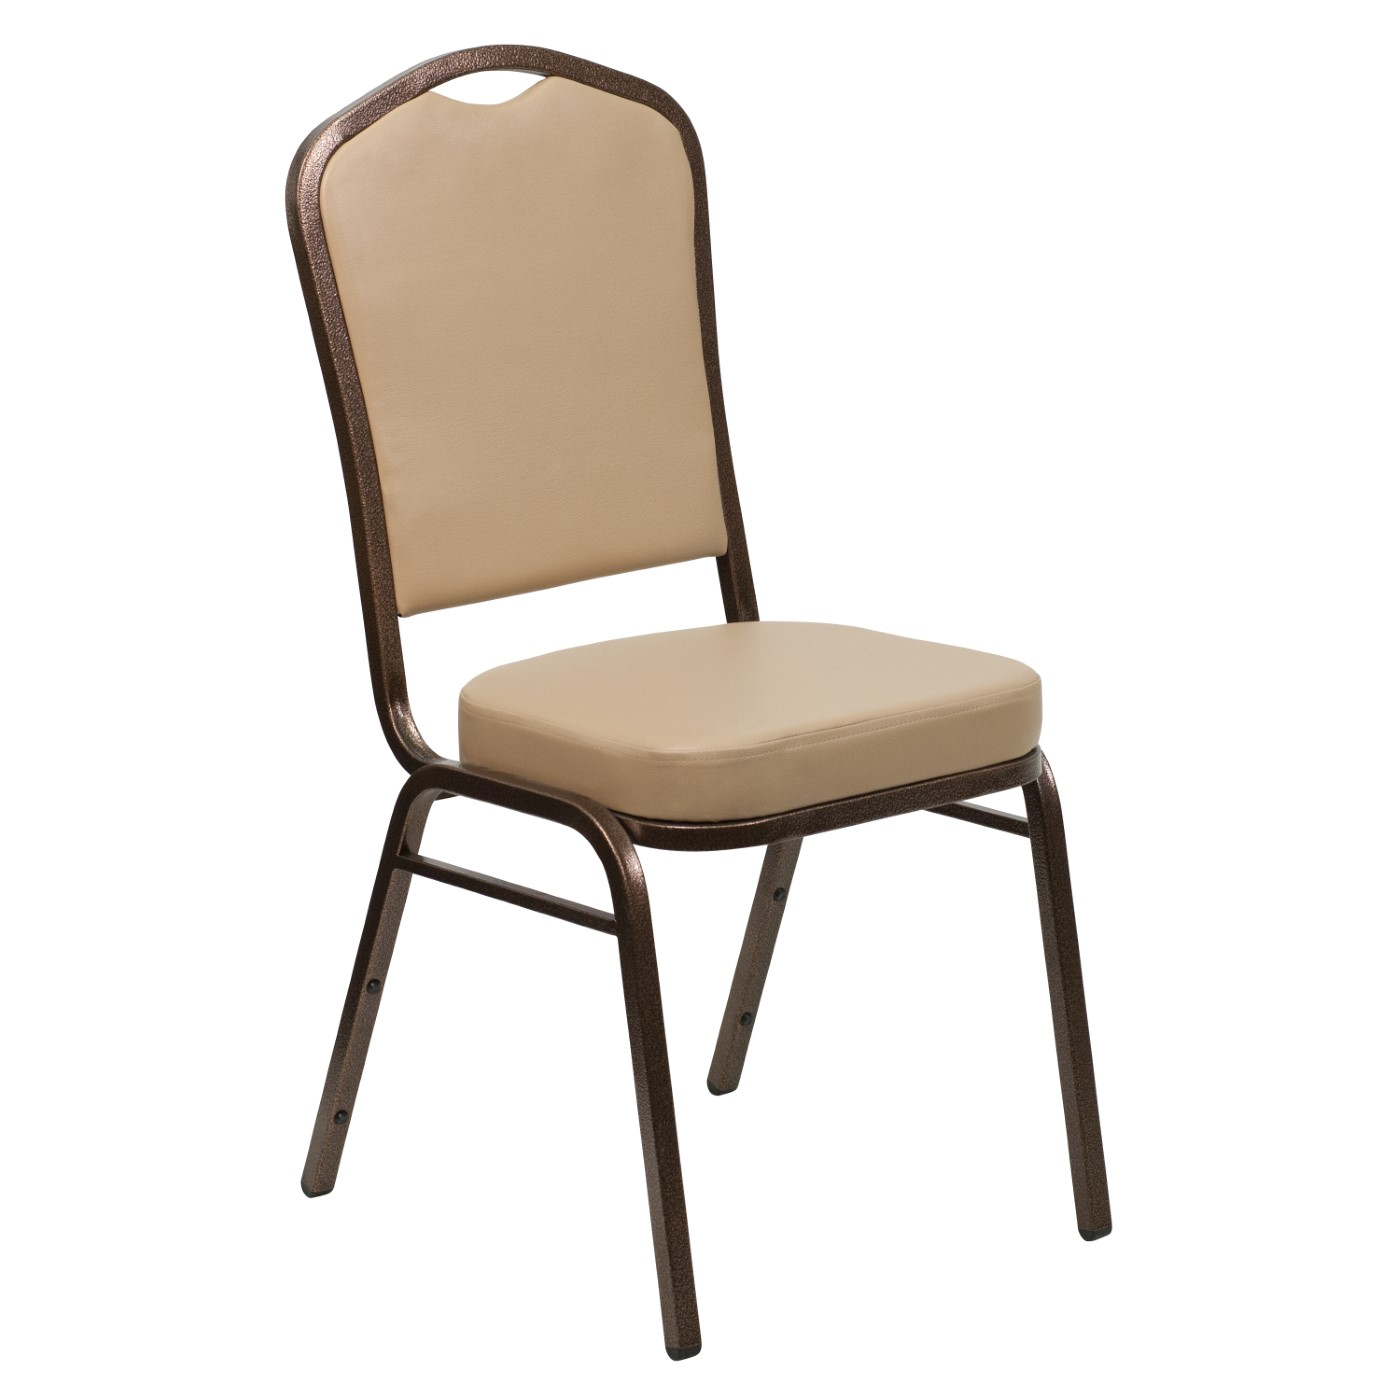 TOUGH ENOUGH Series Crown Back Stacking Banquet Chair in Tan Vinyl - Copper Vein Frame